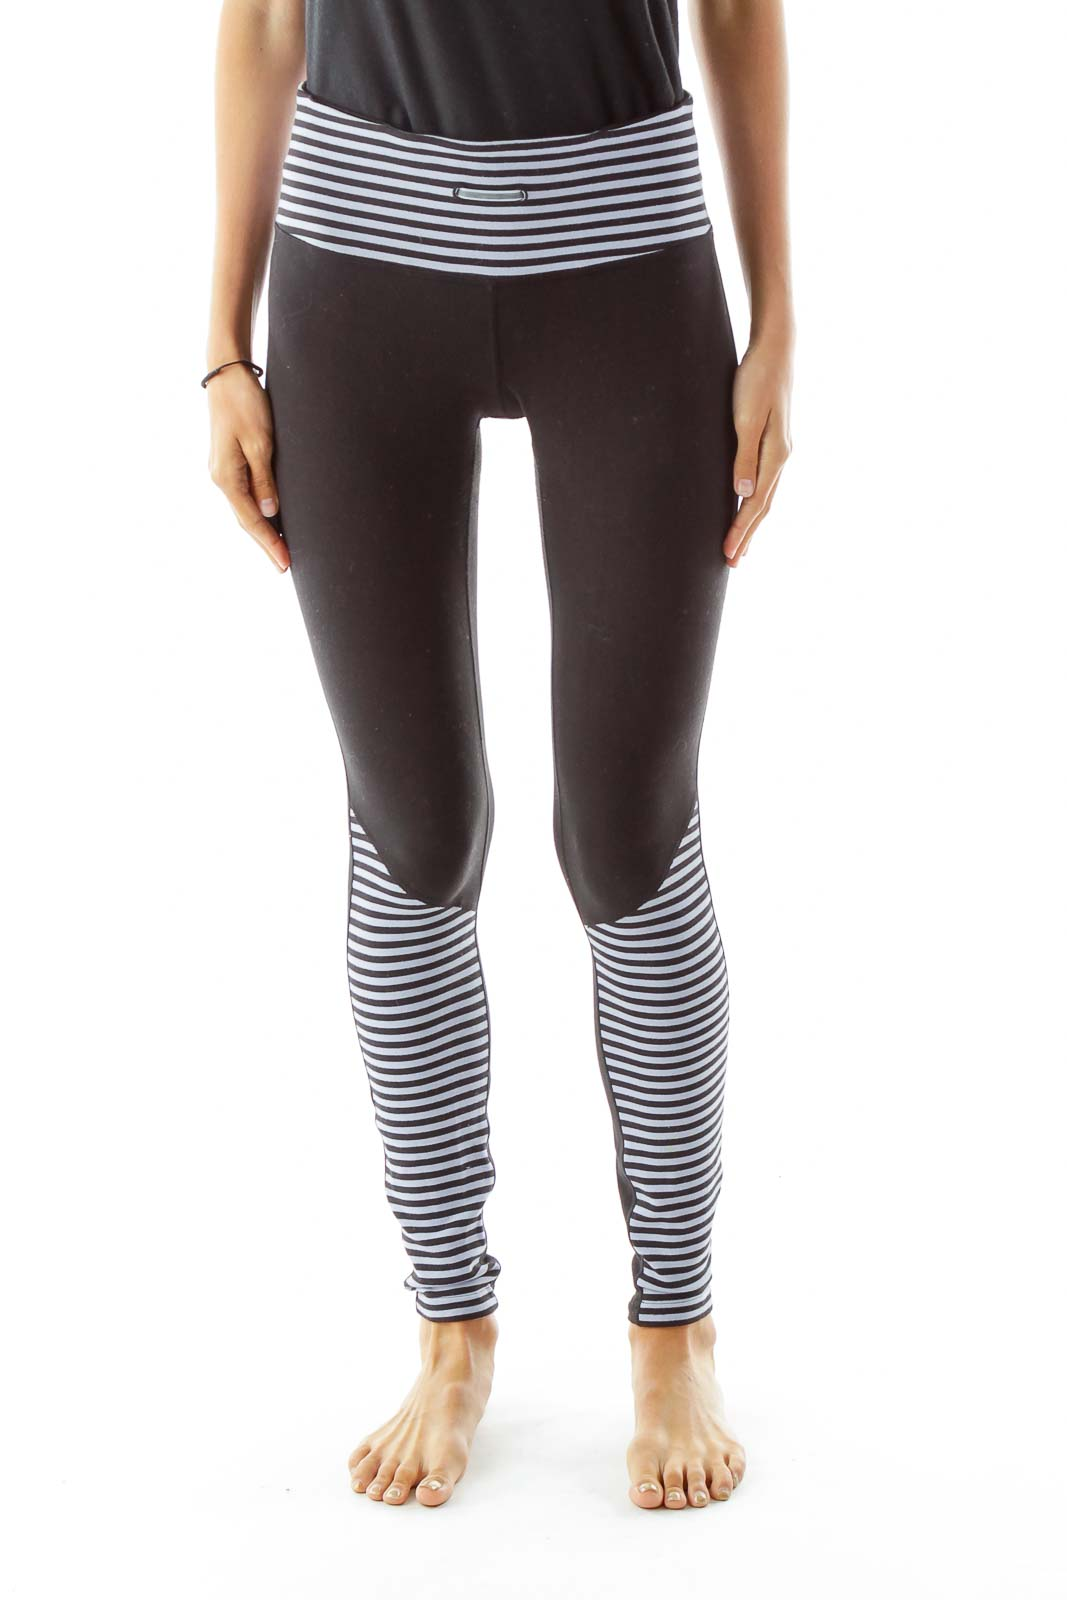 Black Gray Striped Sports Pants